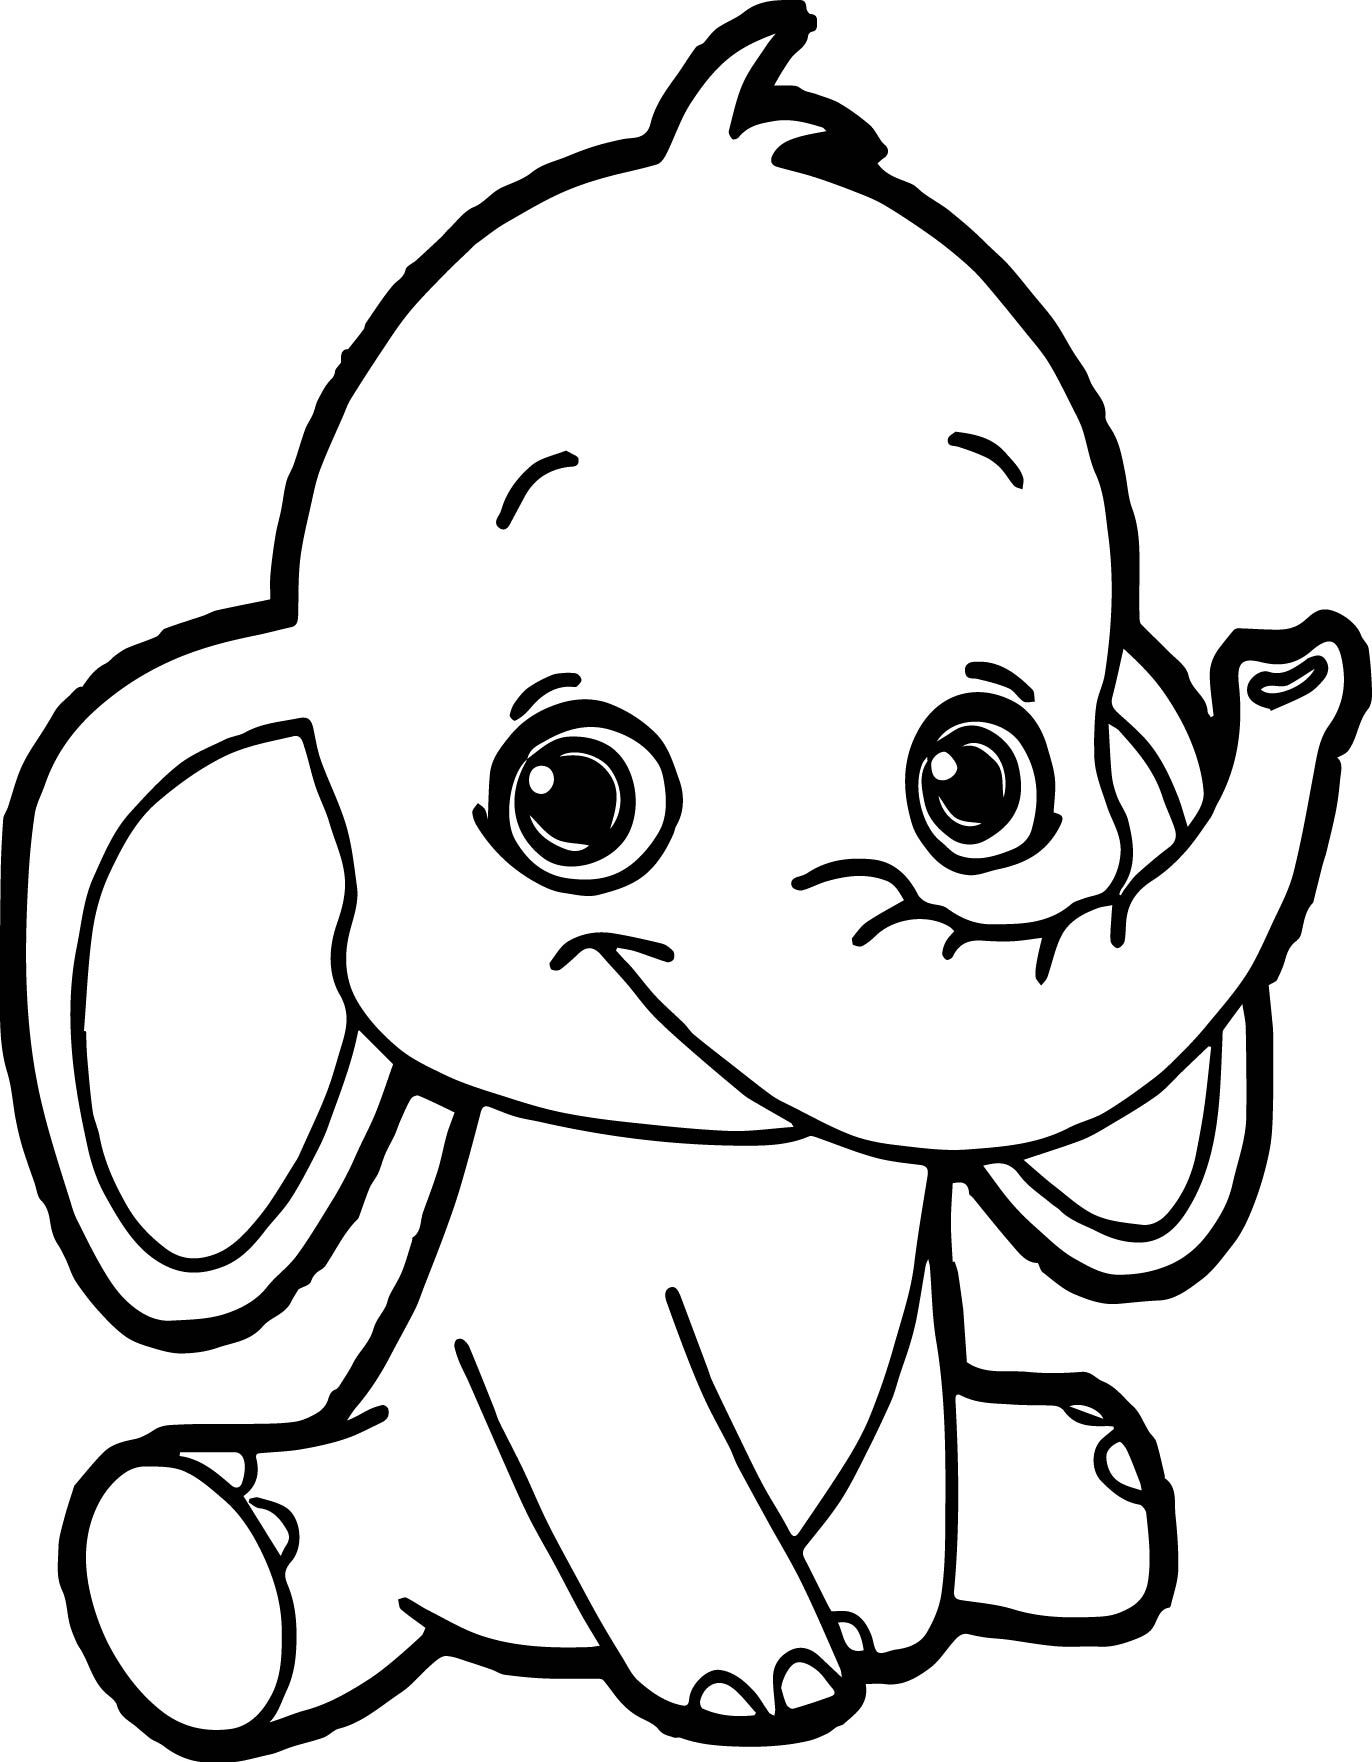 simple baby elephant coloring pages simple elephant drawing at getdrawings free download elephant coloring pages simple baby